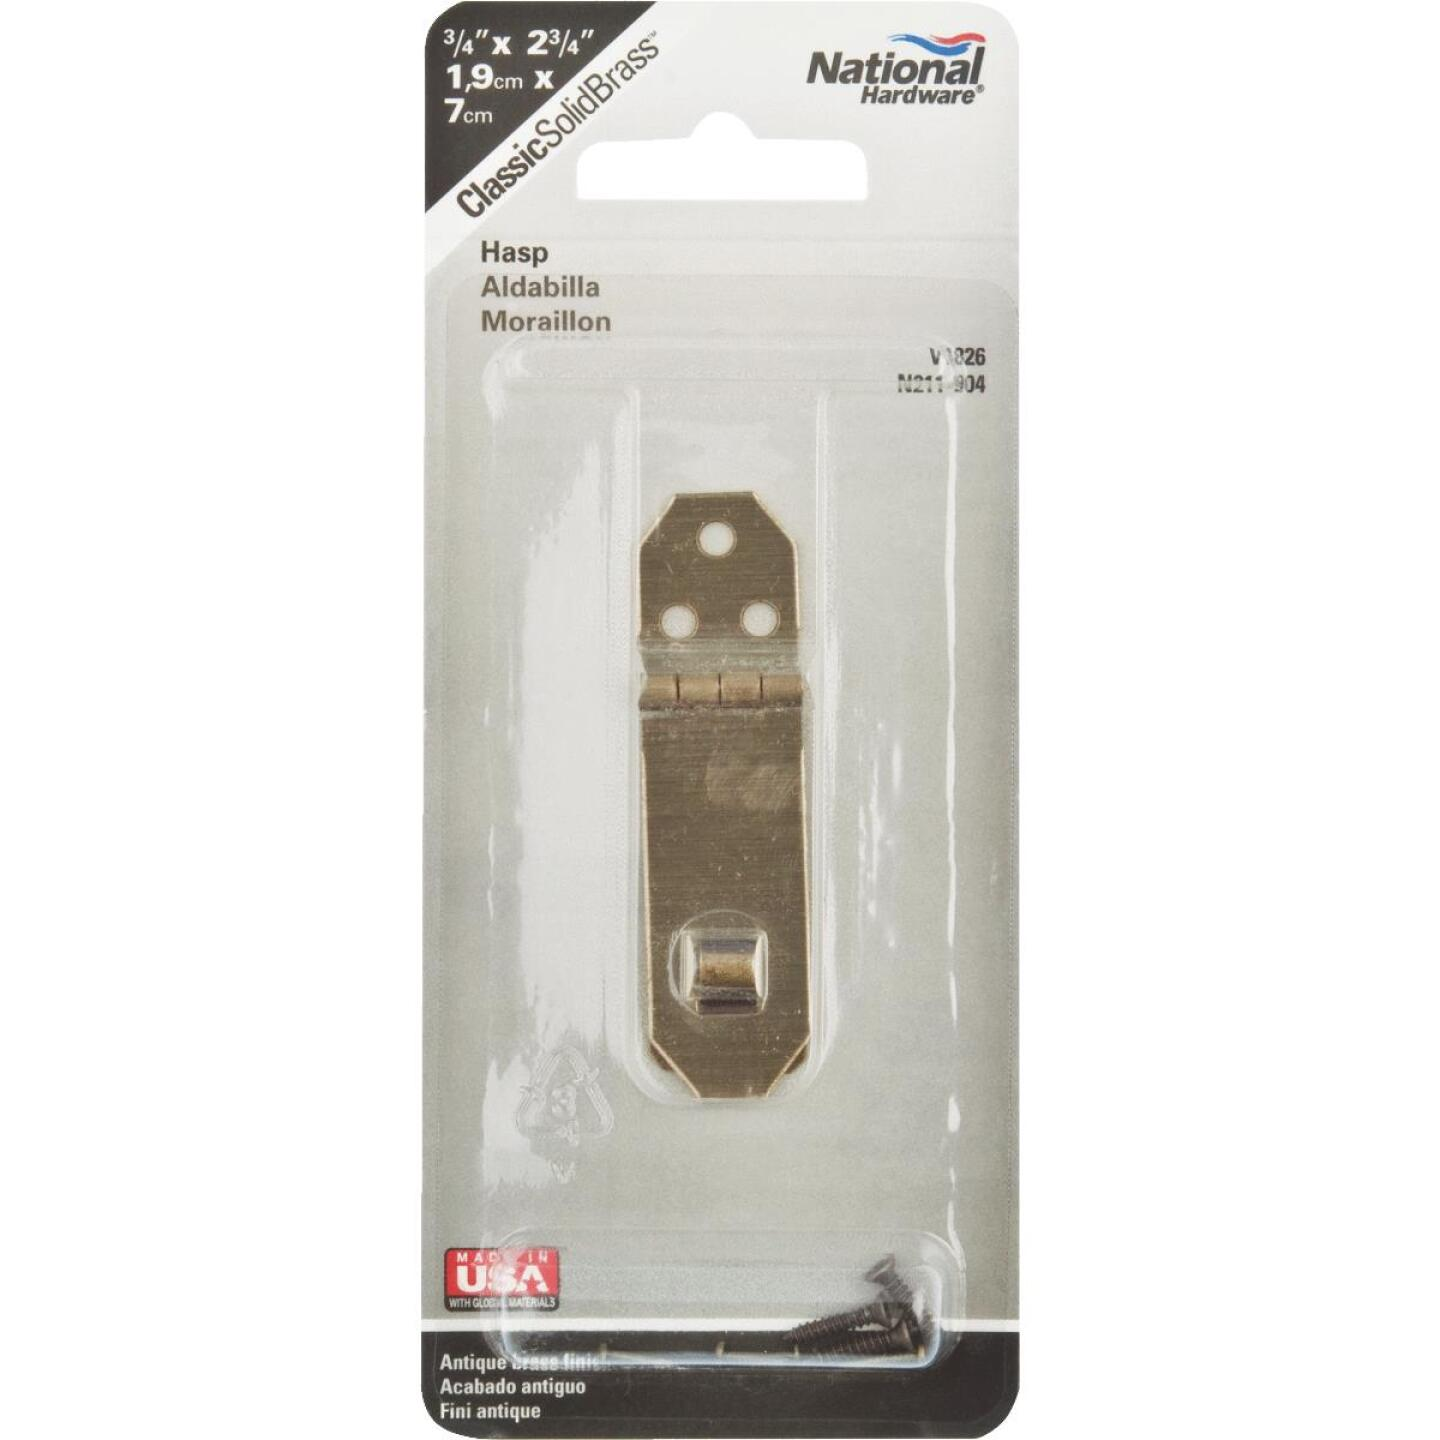 National 3/4 In. x 2-3/4 In. Antique Brass 3-Hole Decorative Hasp Image 2